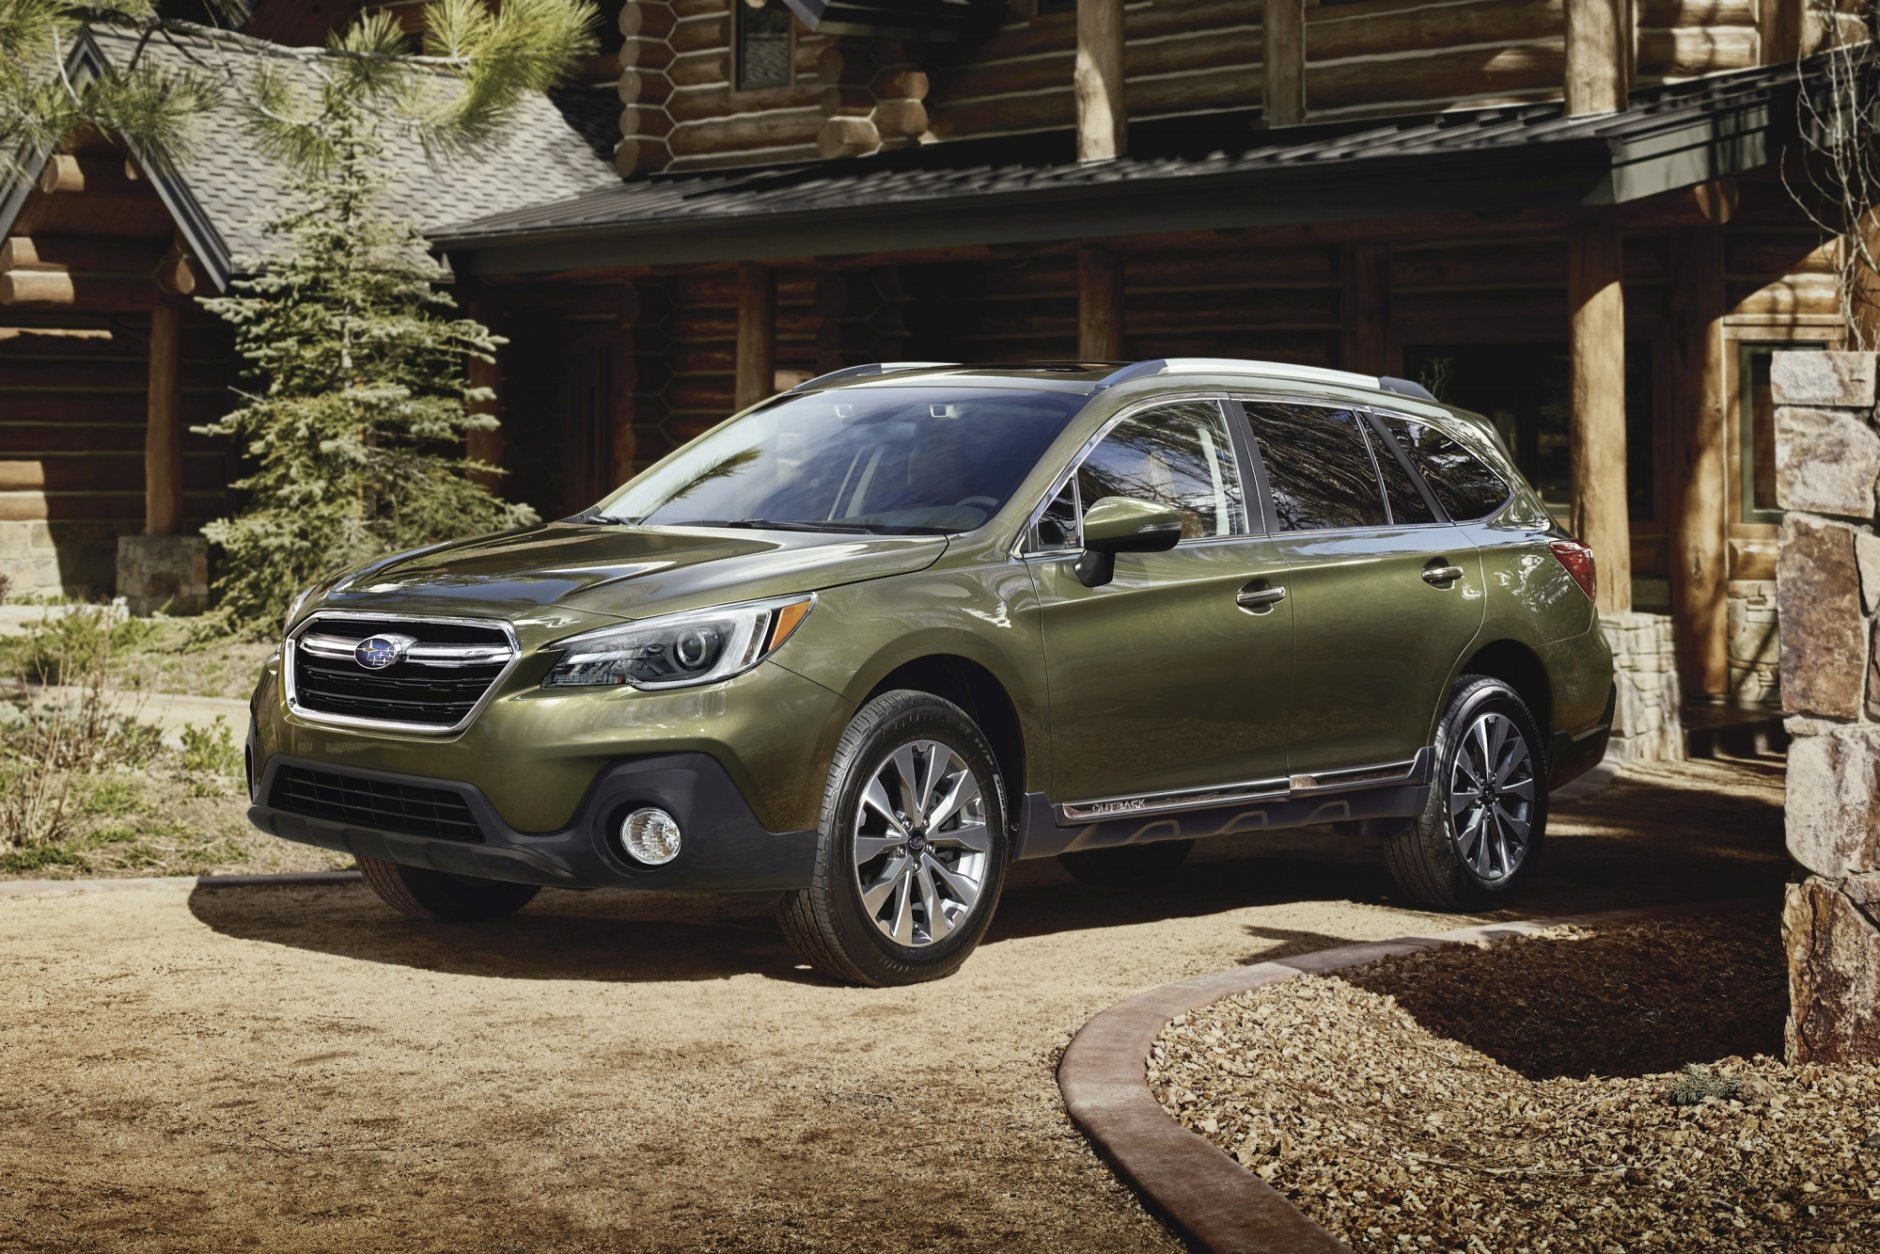 "<p>Subaru offers 0% financing for a limited term on the <a href=""https://cars.usnews.com/cars-trucks/subaru/outback"" target=""_blank"" rel=""noopener"">2019 Subaru Outback</a>.</p>"